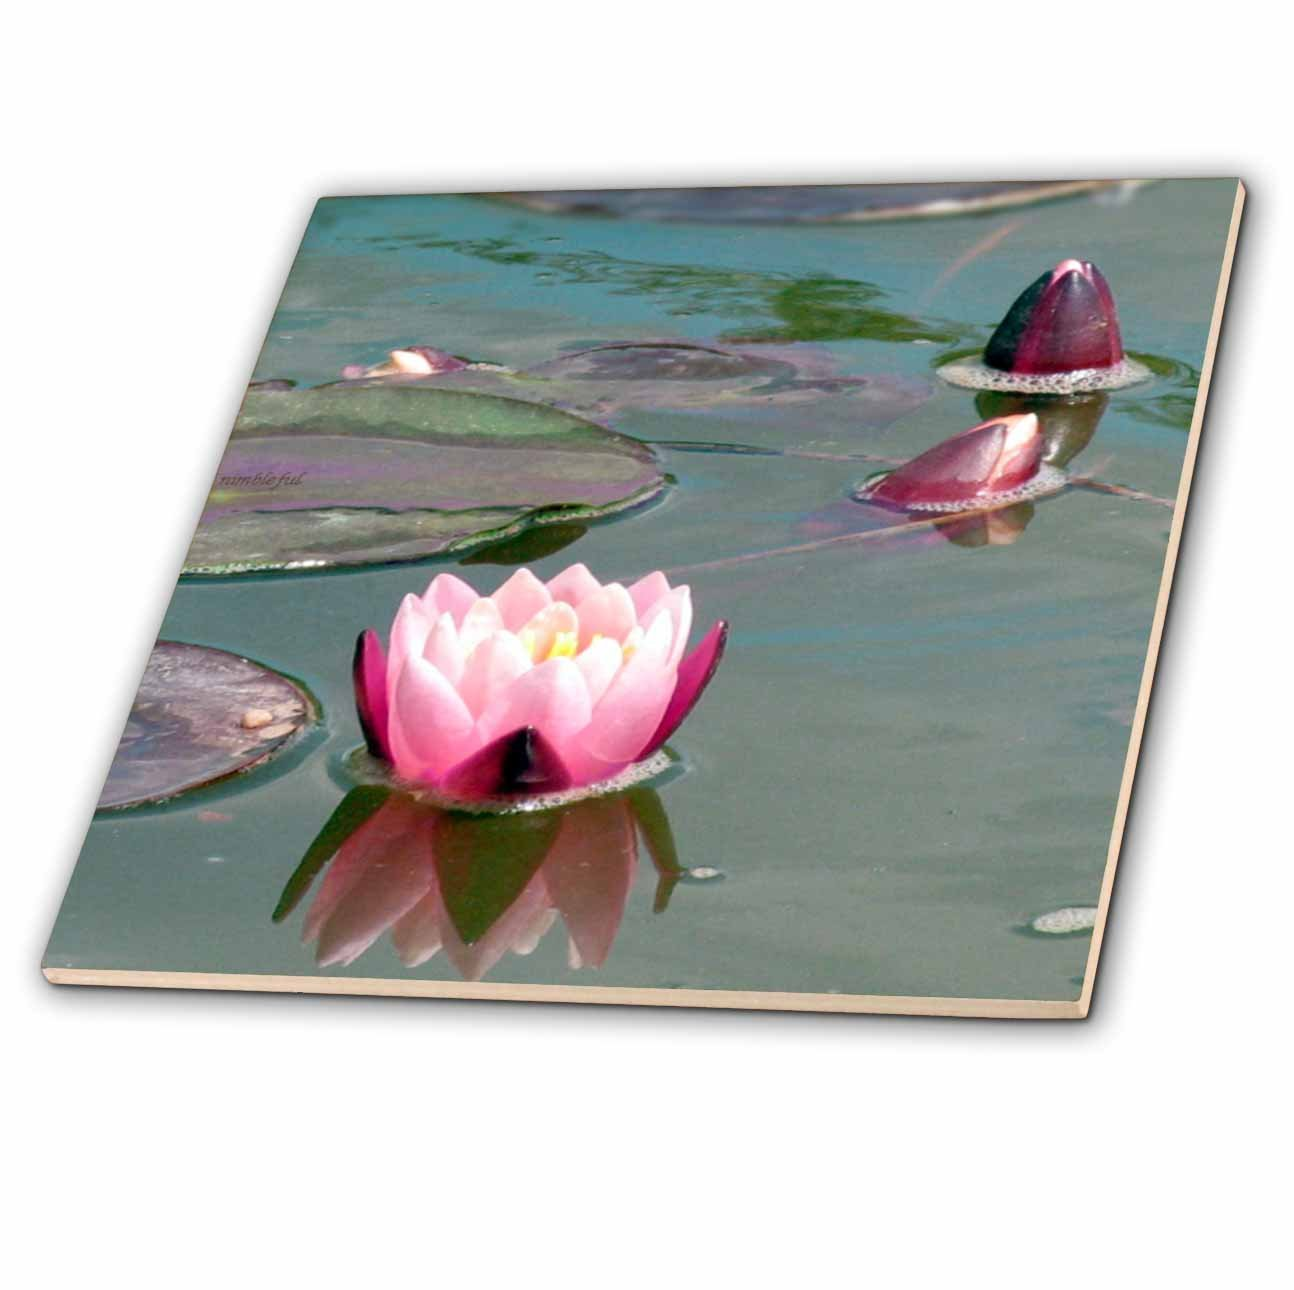 8-Inch 3dRose ct/_112969/_7 Pink Water Lily-Pretty Waterlily Aquatic Flower Photography-Pond Flowers Buds Lilypad-Lilypads-Glass Tile